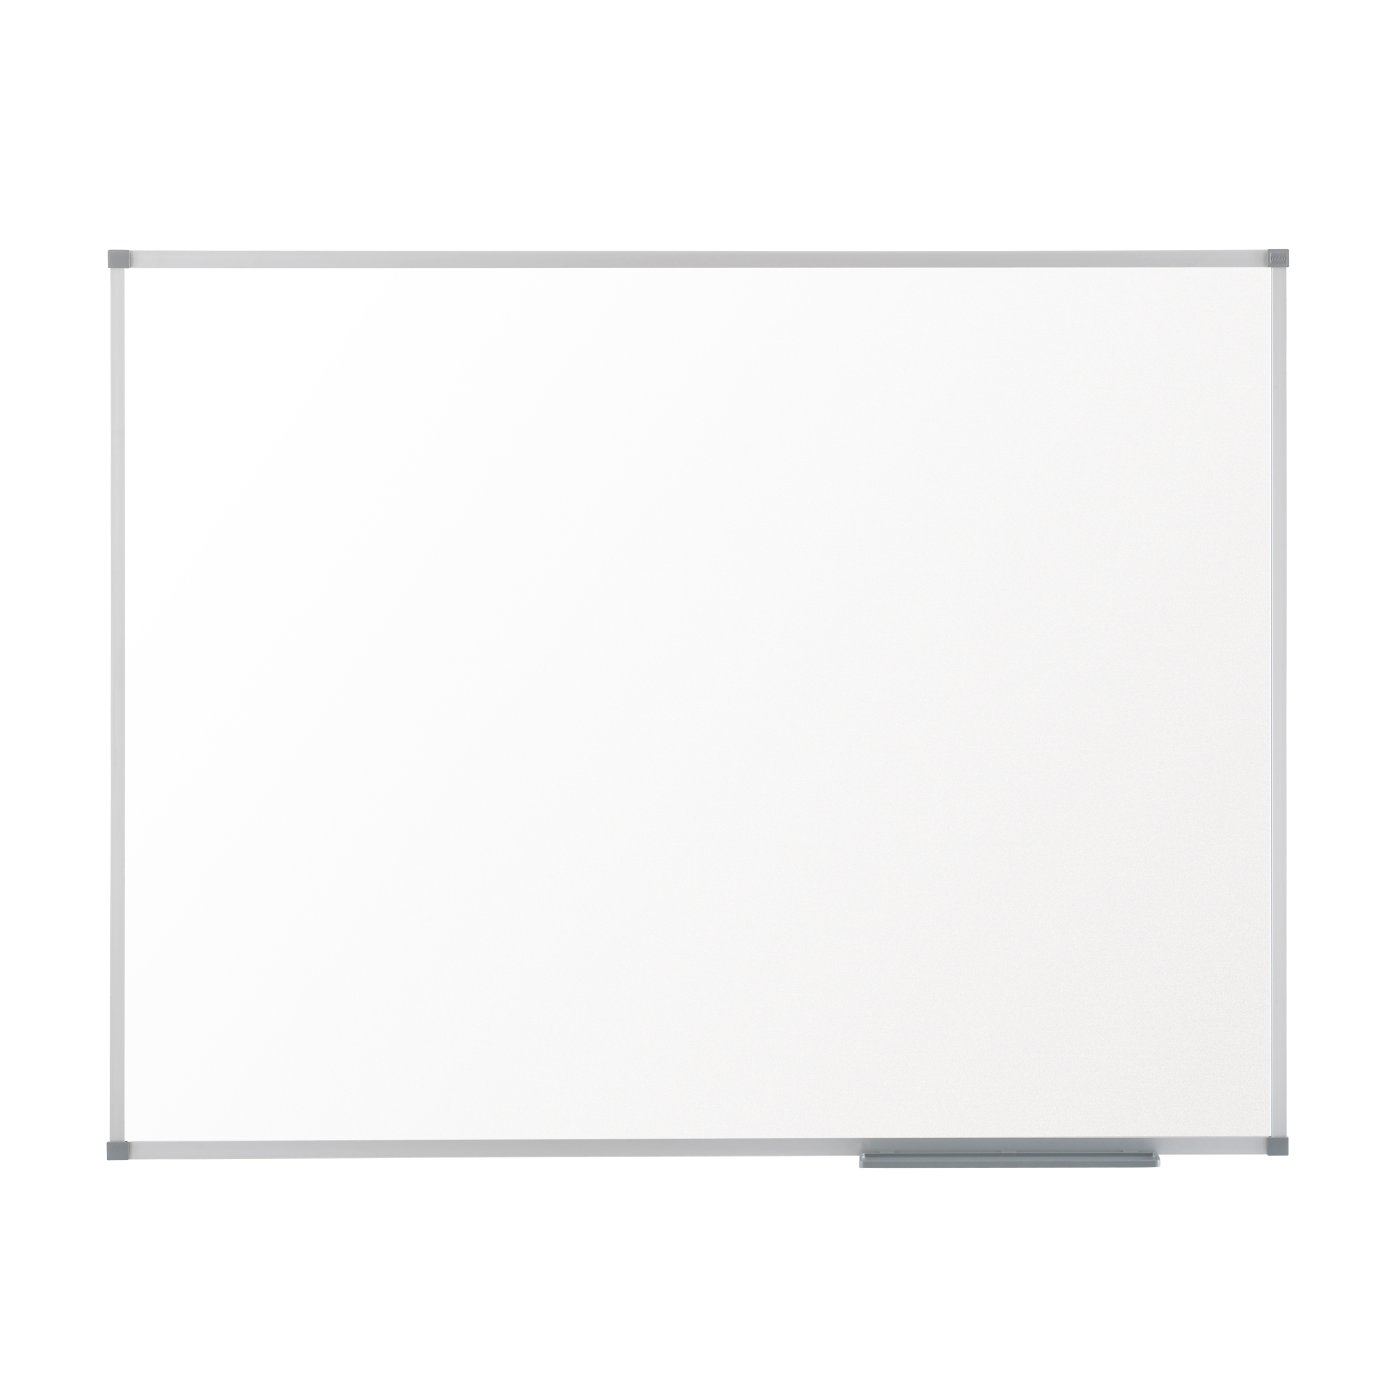 NOBO 1905204 BASIC MELAMINE NON MAGNETIC WHITEBOARD 1500X1000MM WITH TRIM